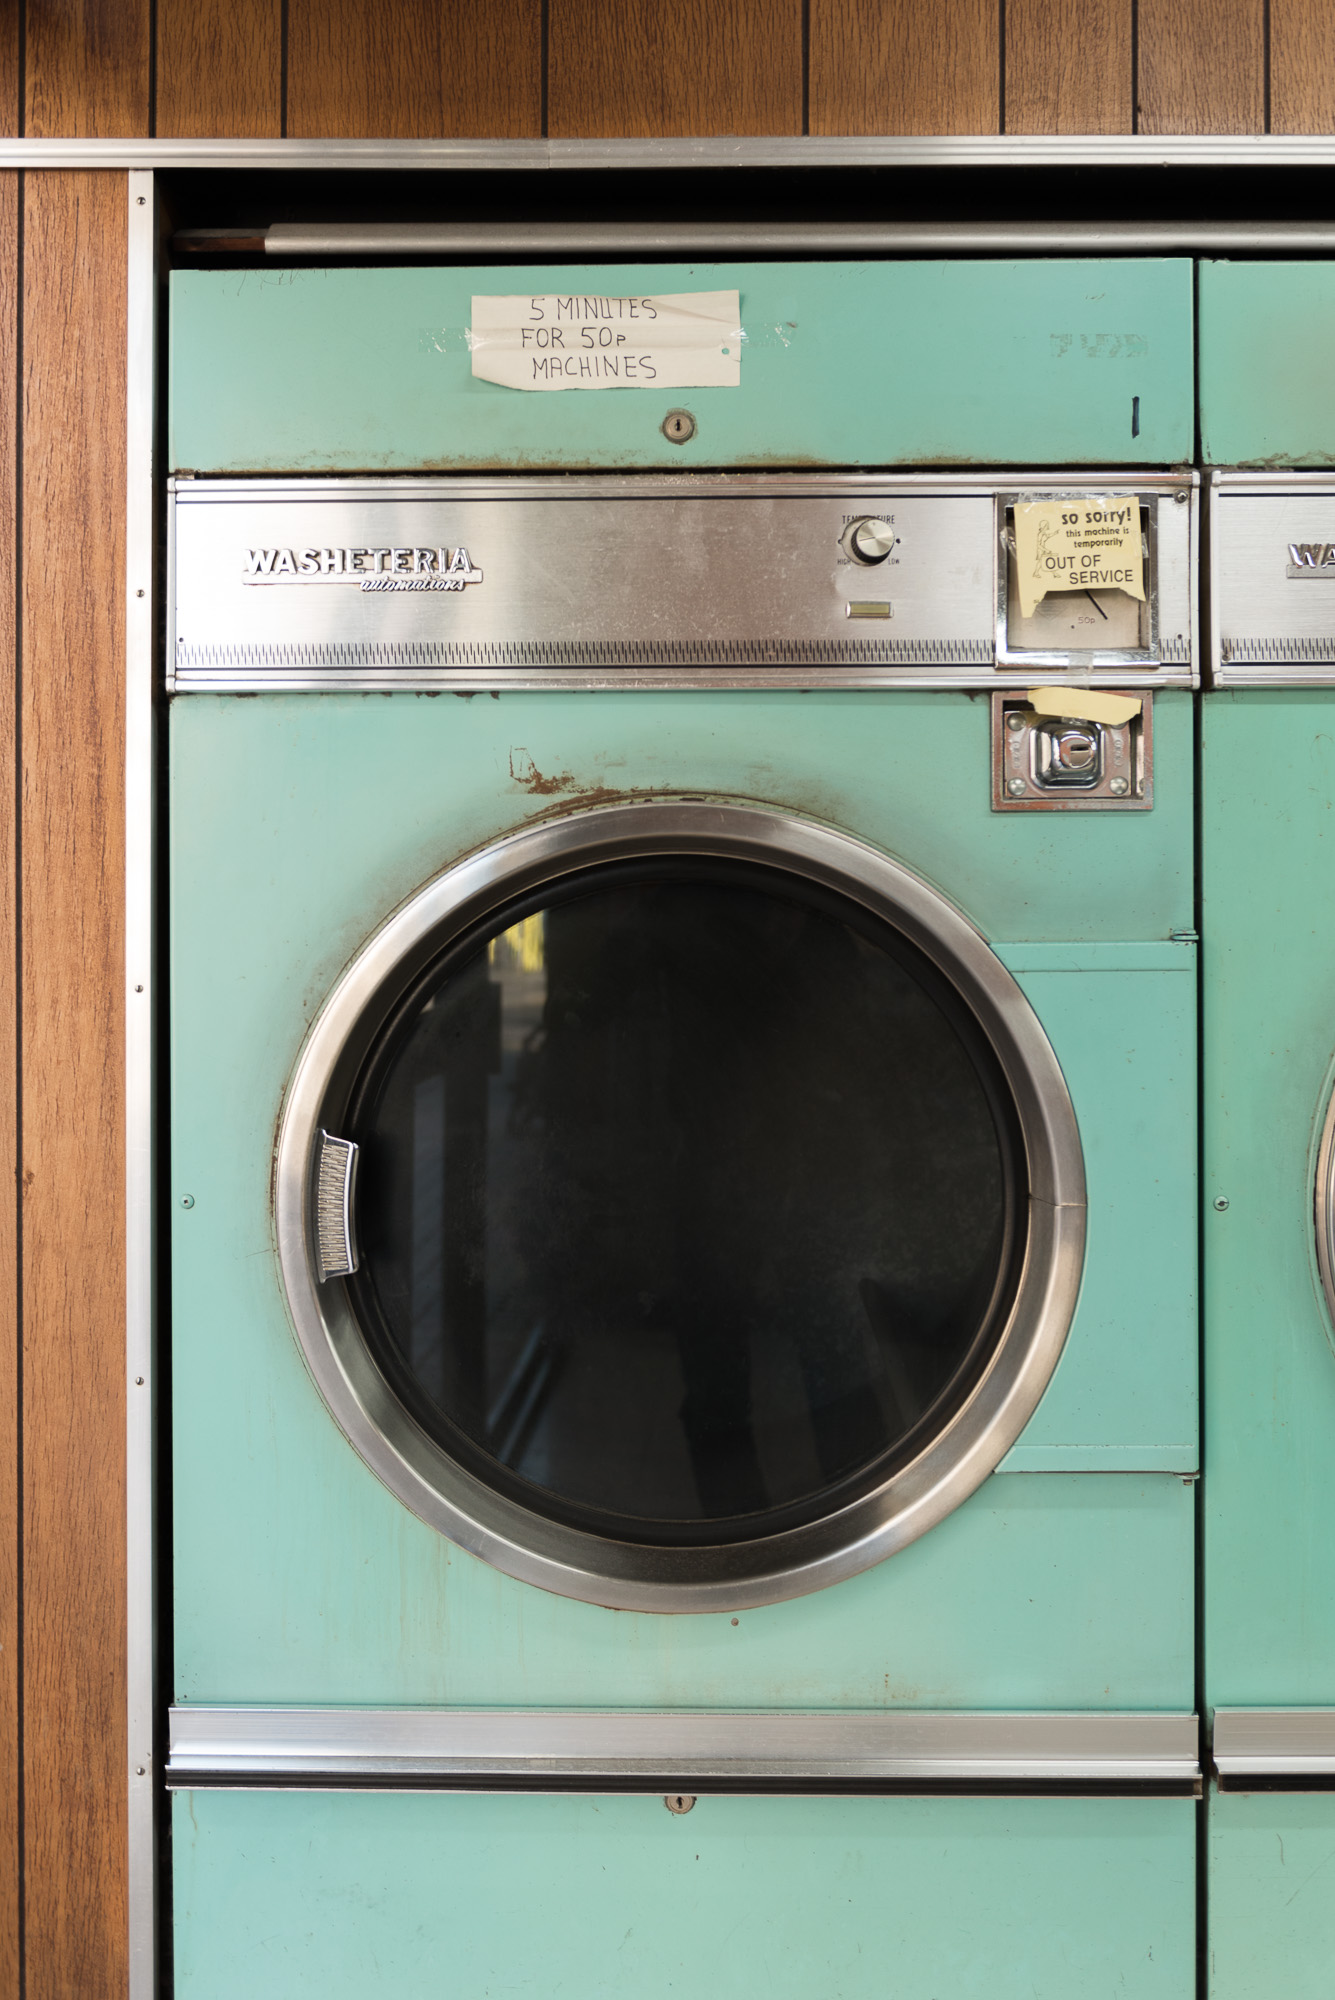 A photo of a vintage washing machine in a laundromat.